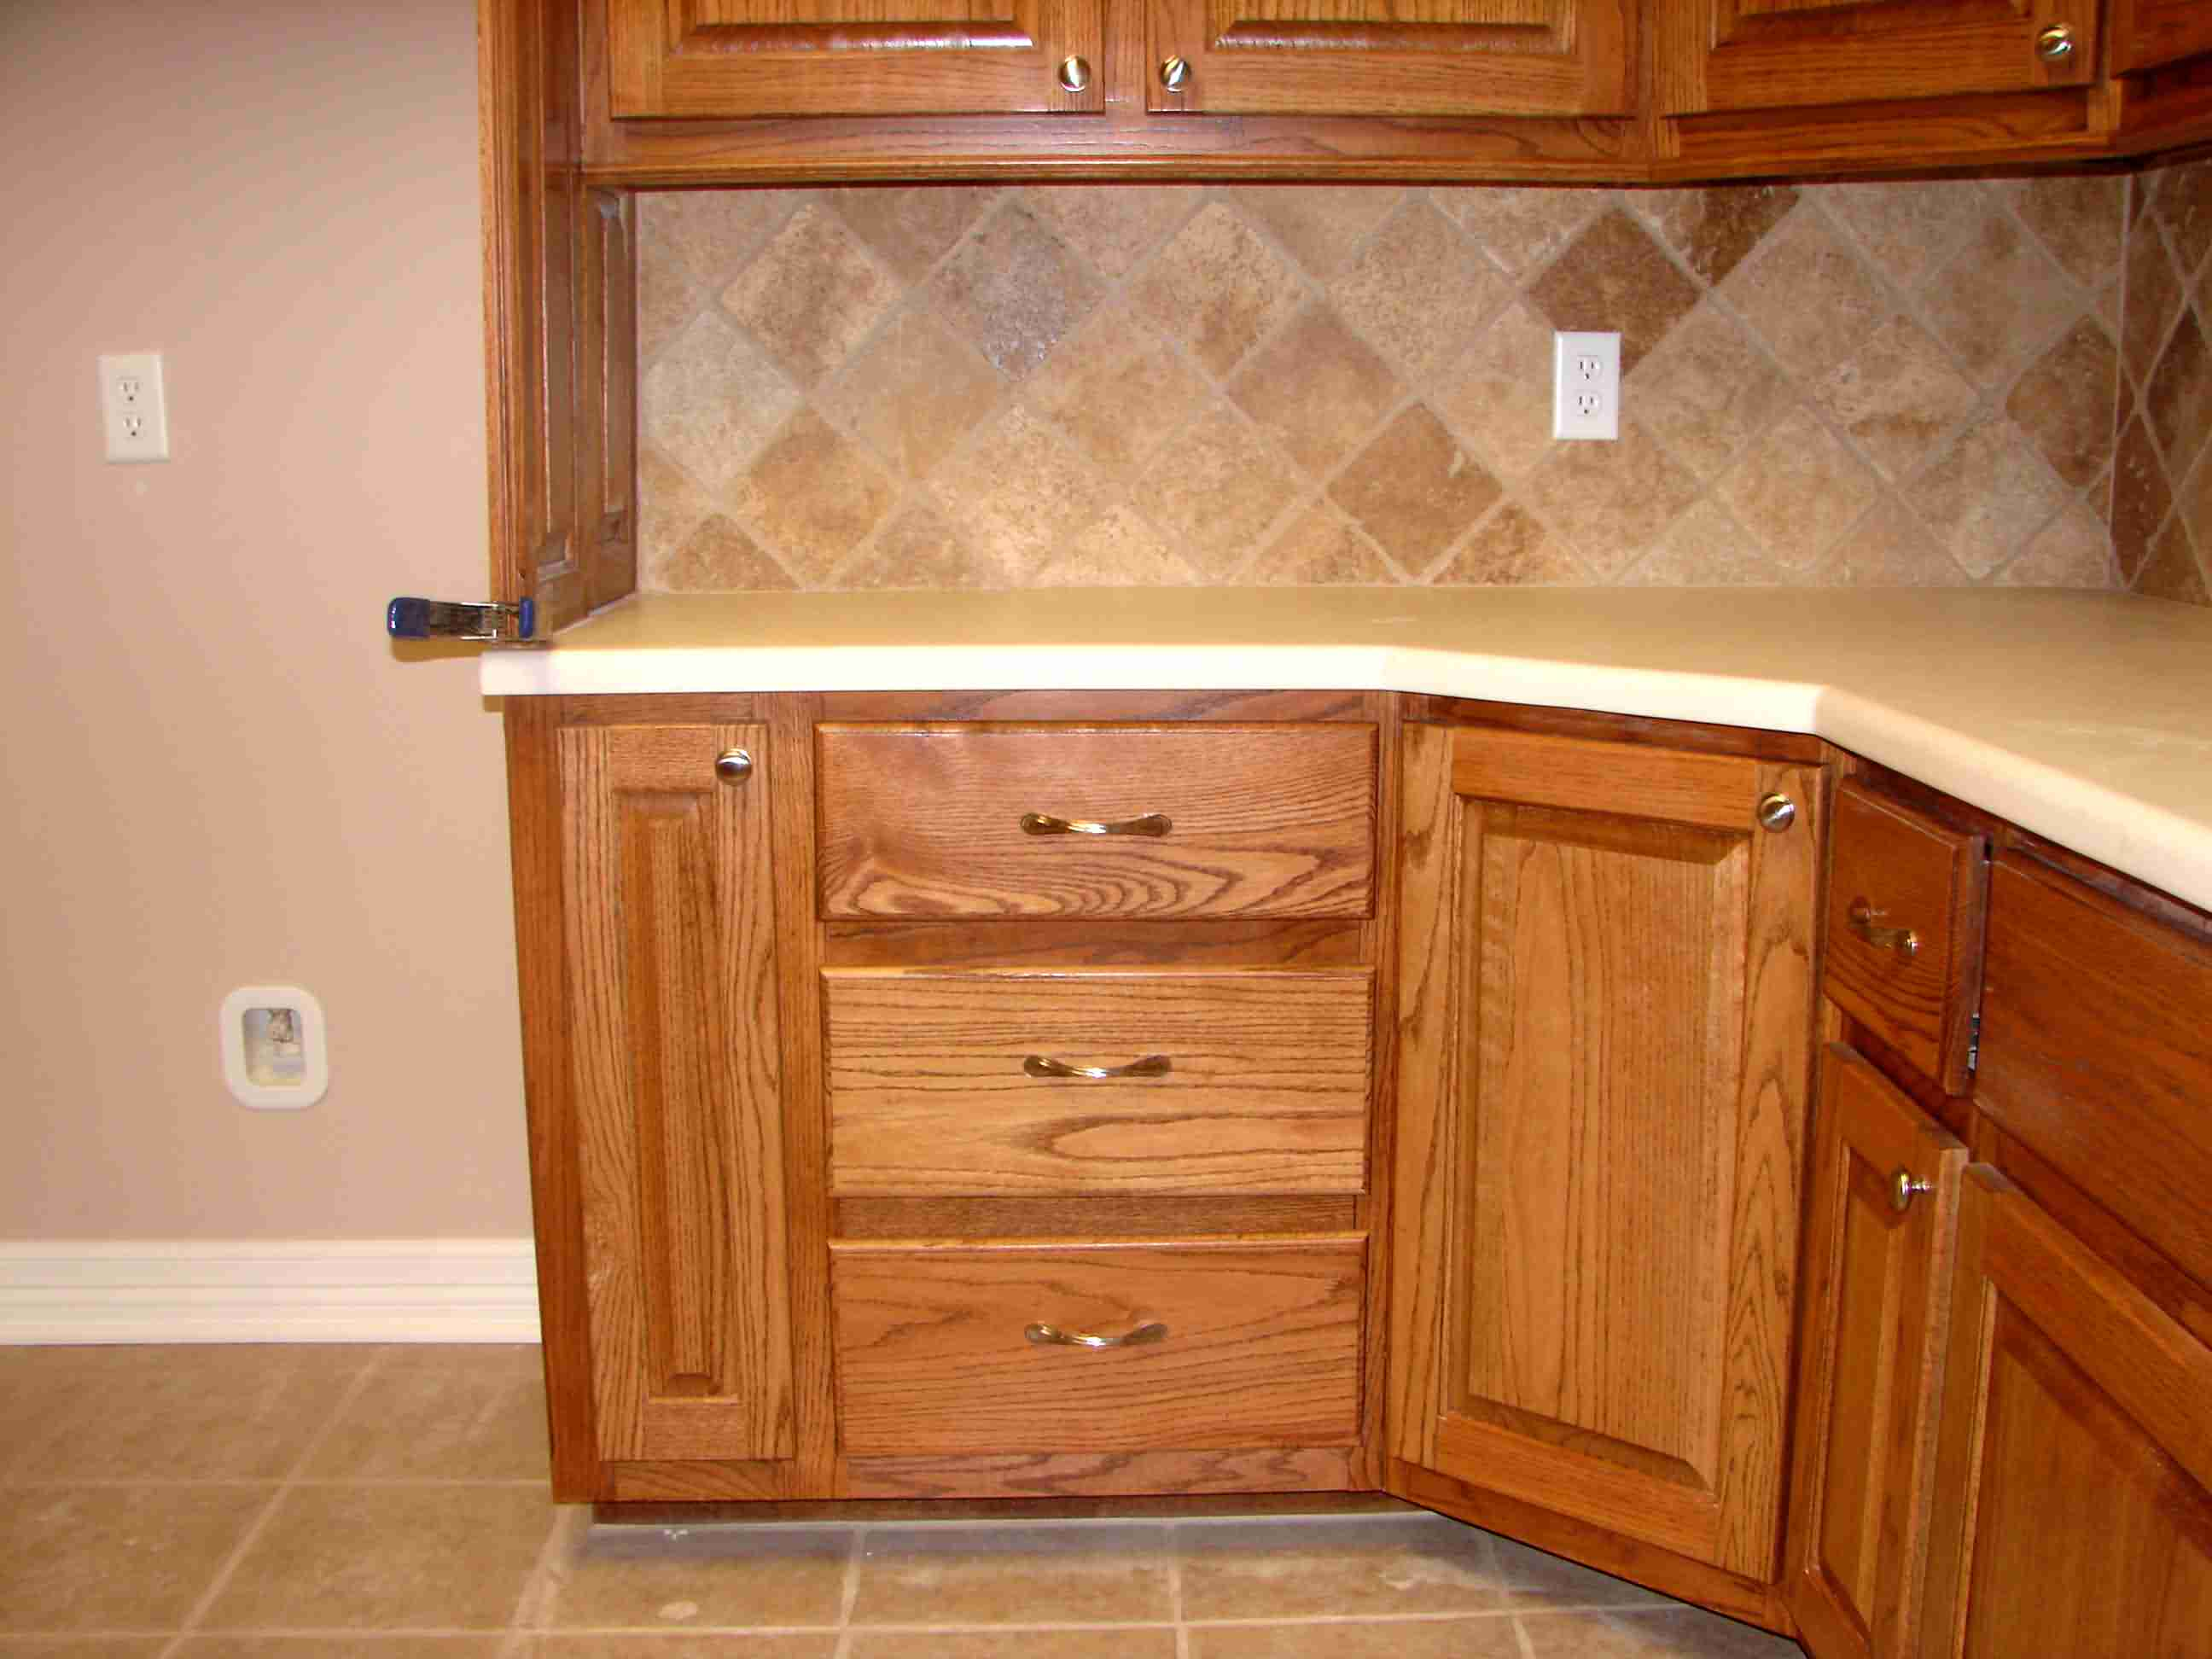 kitchen cabinet ideas for corners kitchen cabinets ideas kitchen cabinet ideas for corners photo 2